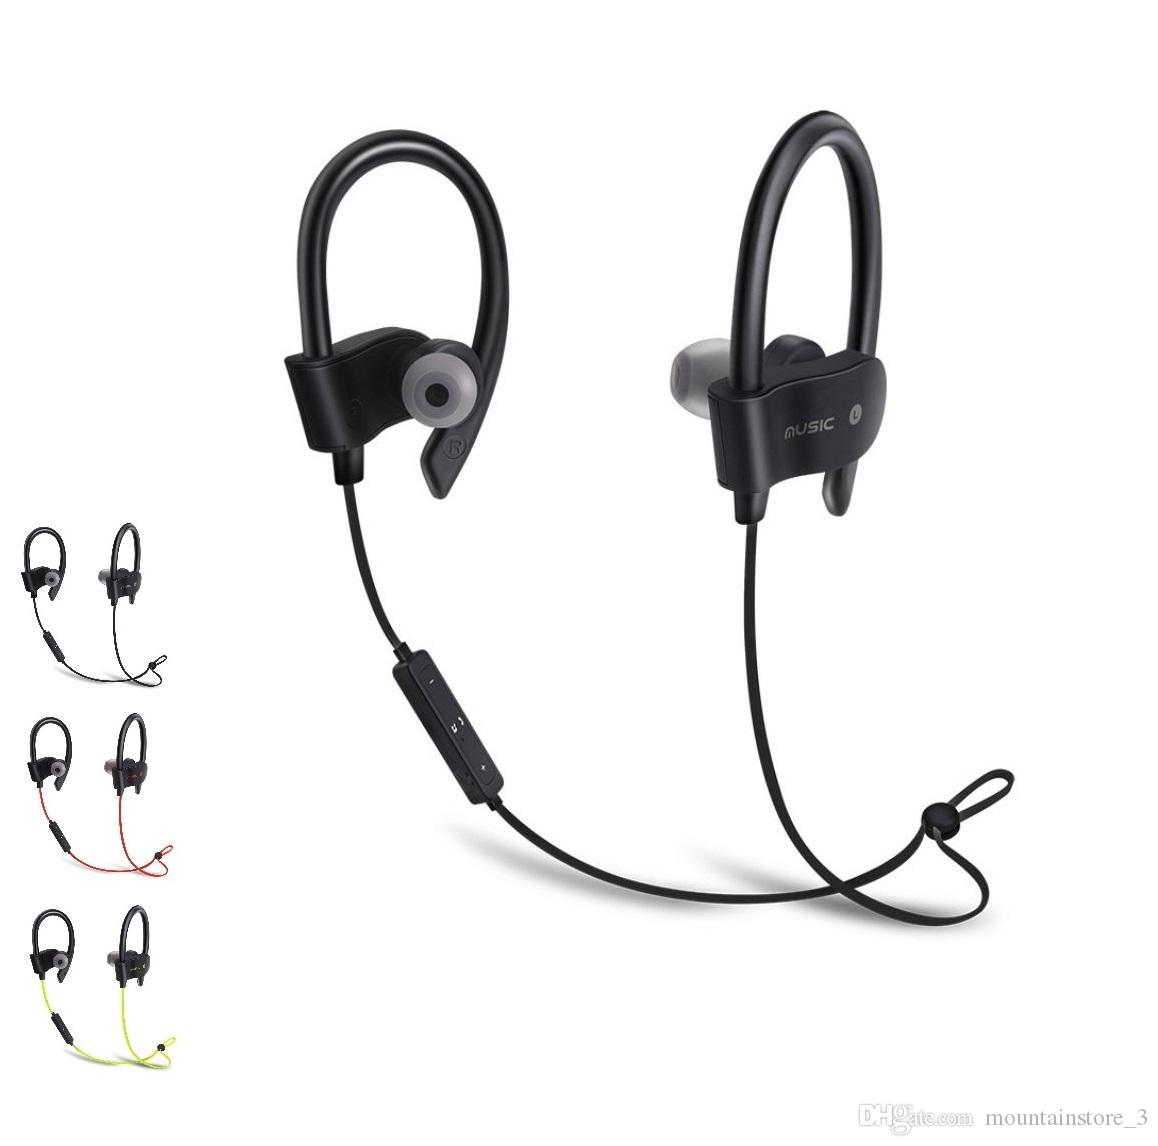 761c5d3cc45ca3 56S Wireless Bluetooth Earphones Waterproof IPX5 Headphone Sport Running  Headset Stereo Bass Earbuds Handsfree With Mic Retail Online with  $15.4/Piece on ...